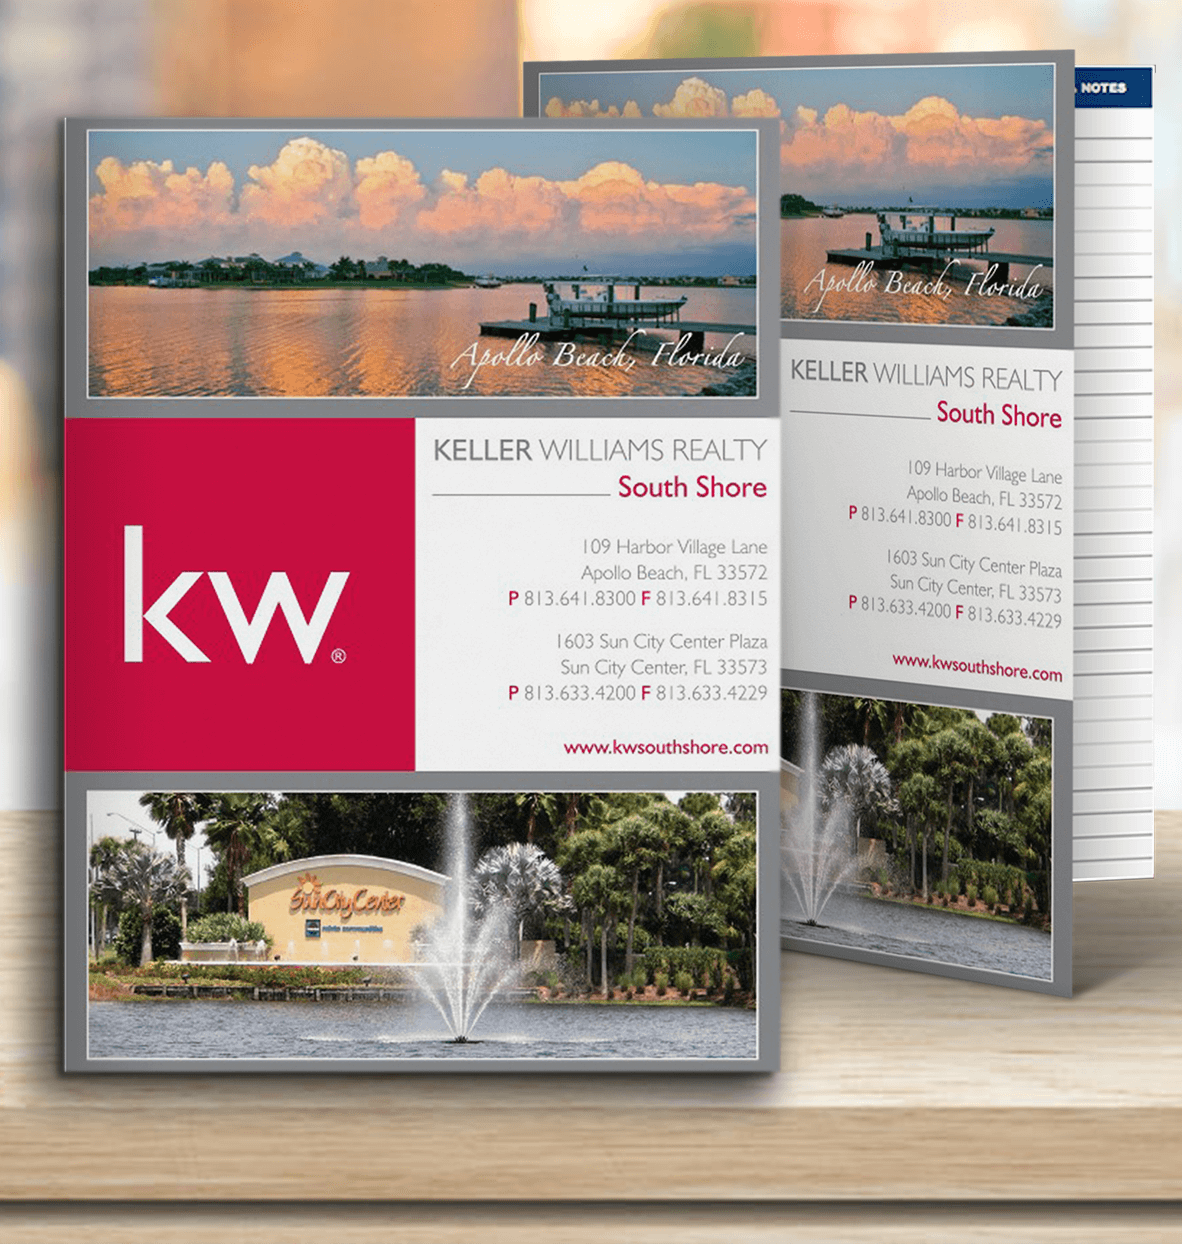 Keller Williams Realty Folder